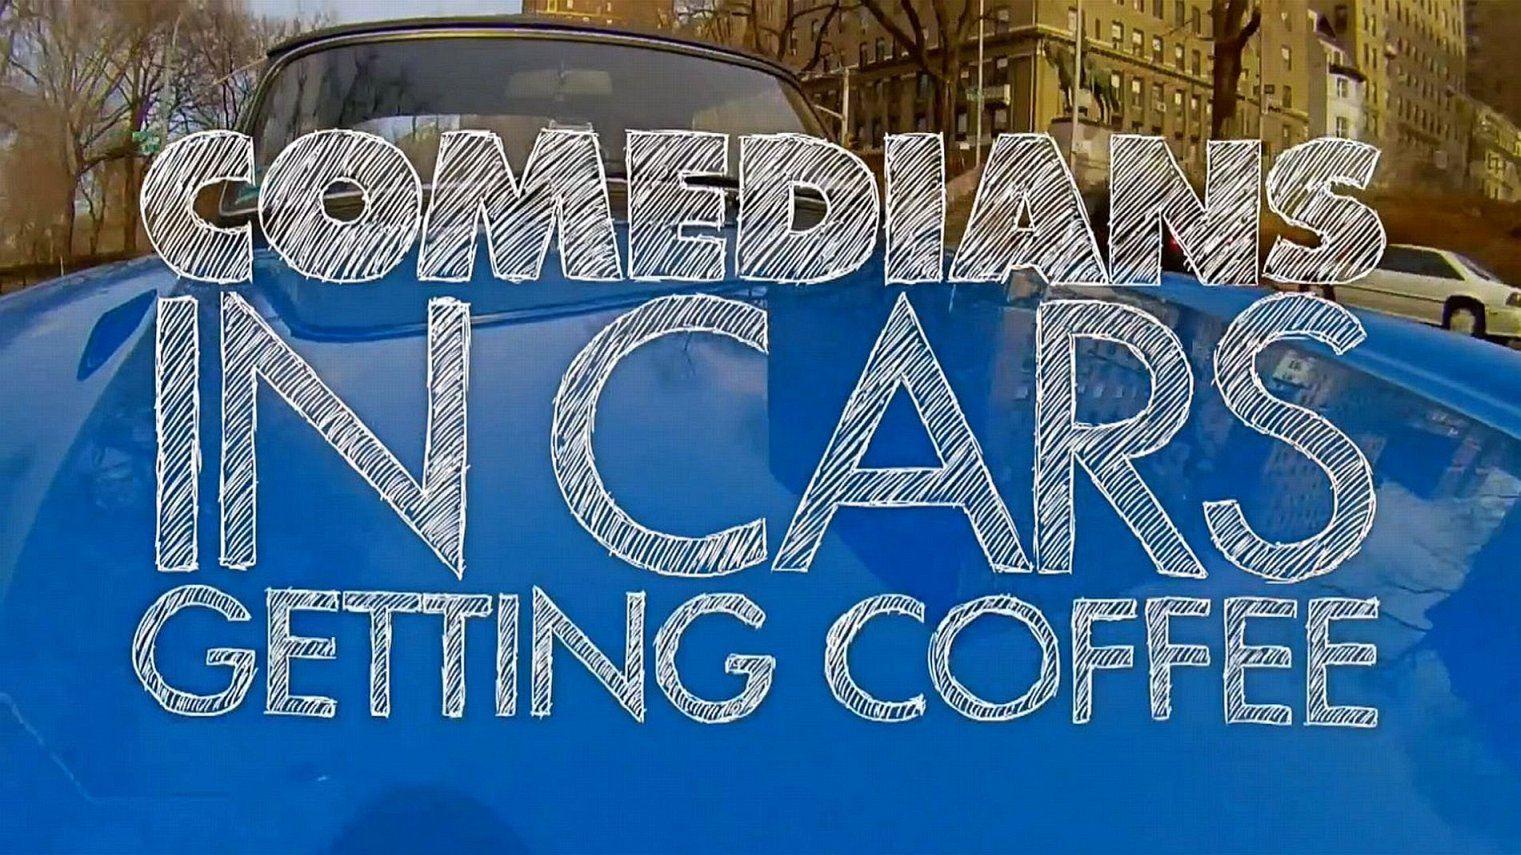 what time does Comedians in Cars Getting Coffee come on